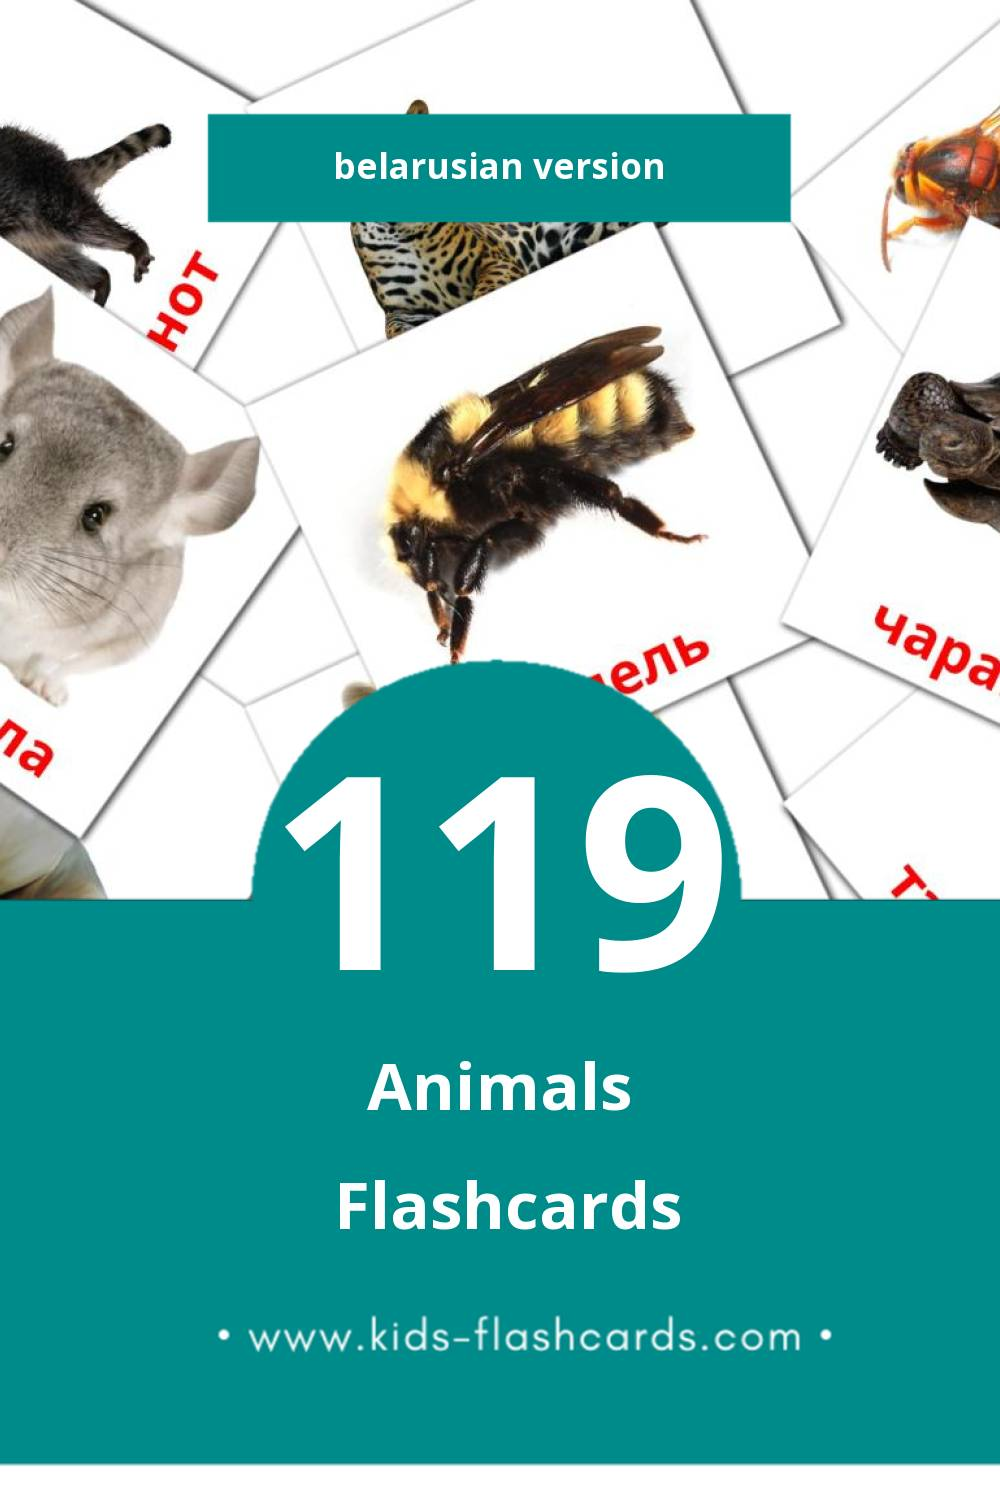 Visual Djur Flashcards for Toddlers (31 cards in Belarusian)